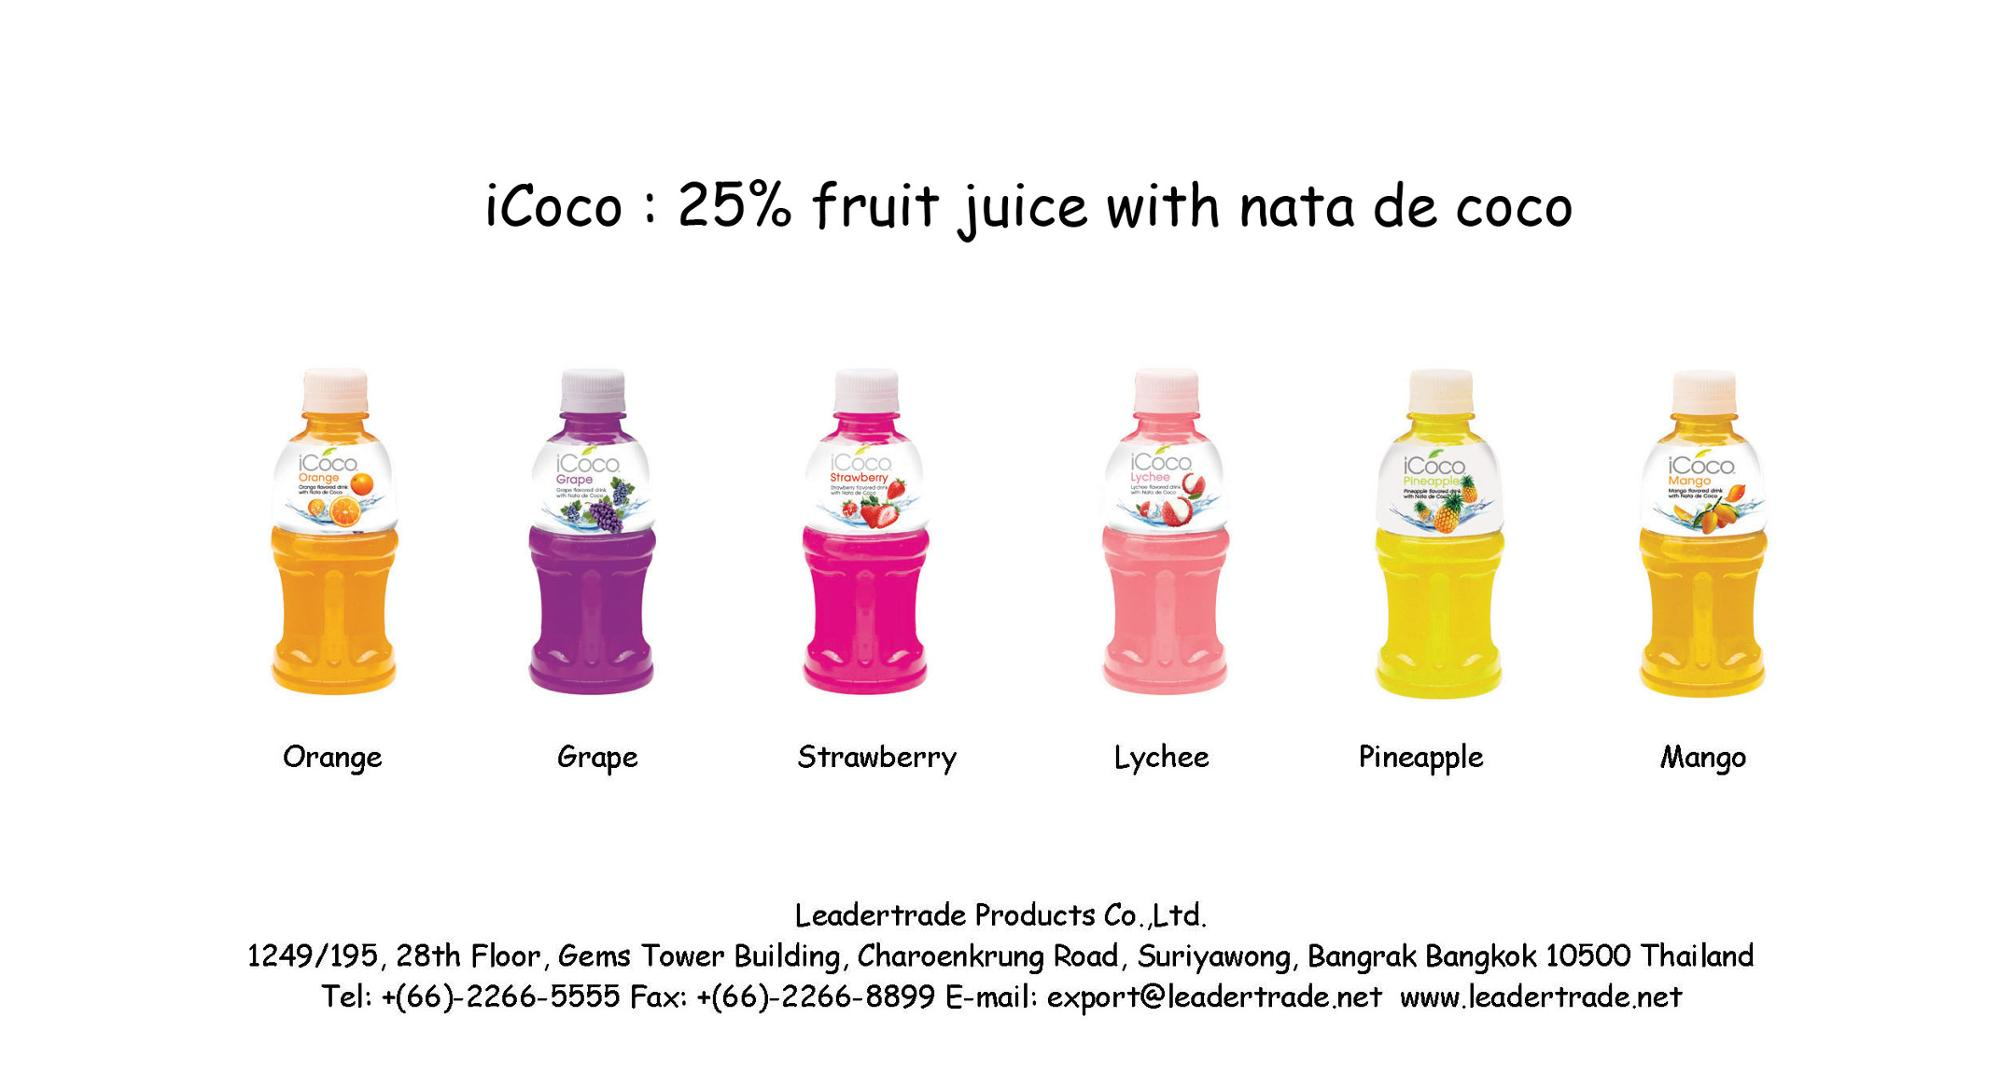 Thailand fruit juice nata de coco coconut jelly drink iCoco (Orange), View  nata de coco, iCoco Product Details from LEADERTRADE PRODUCTS CO , LTD  on